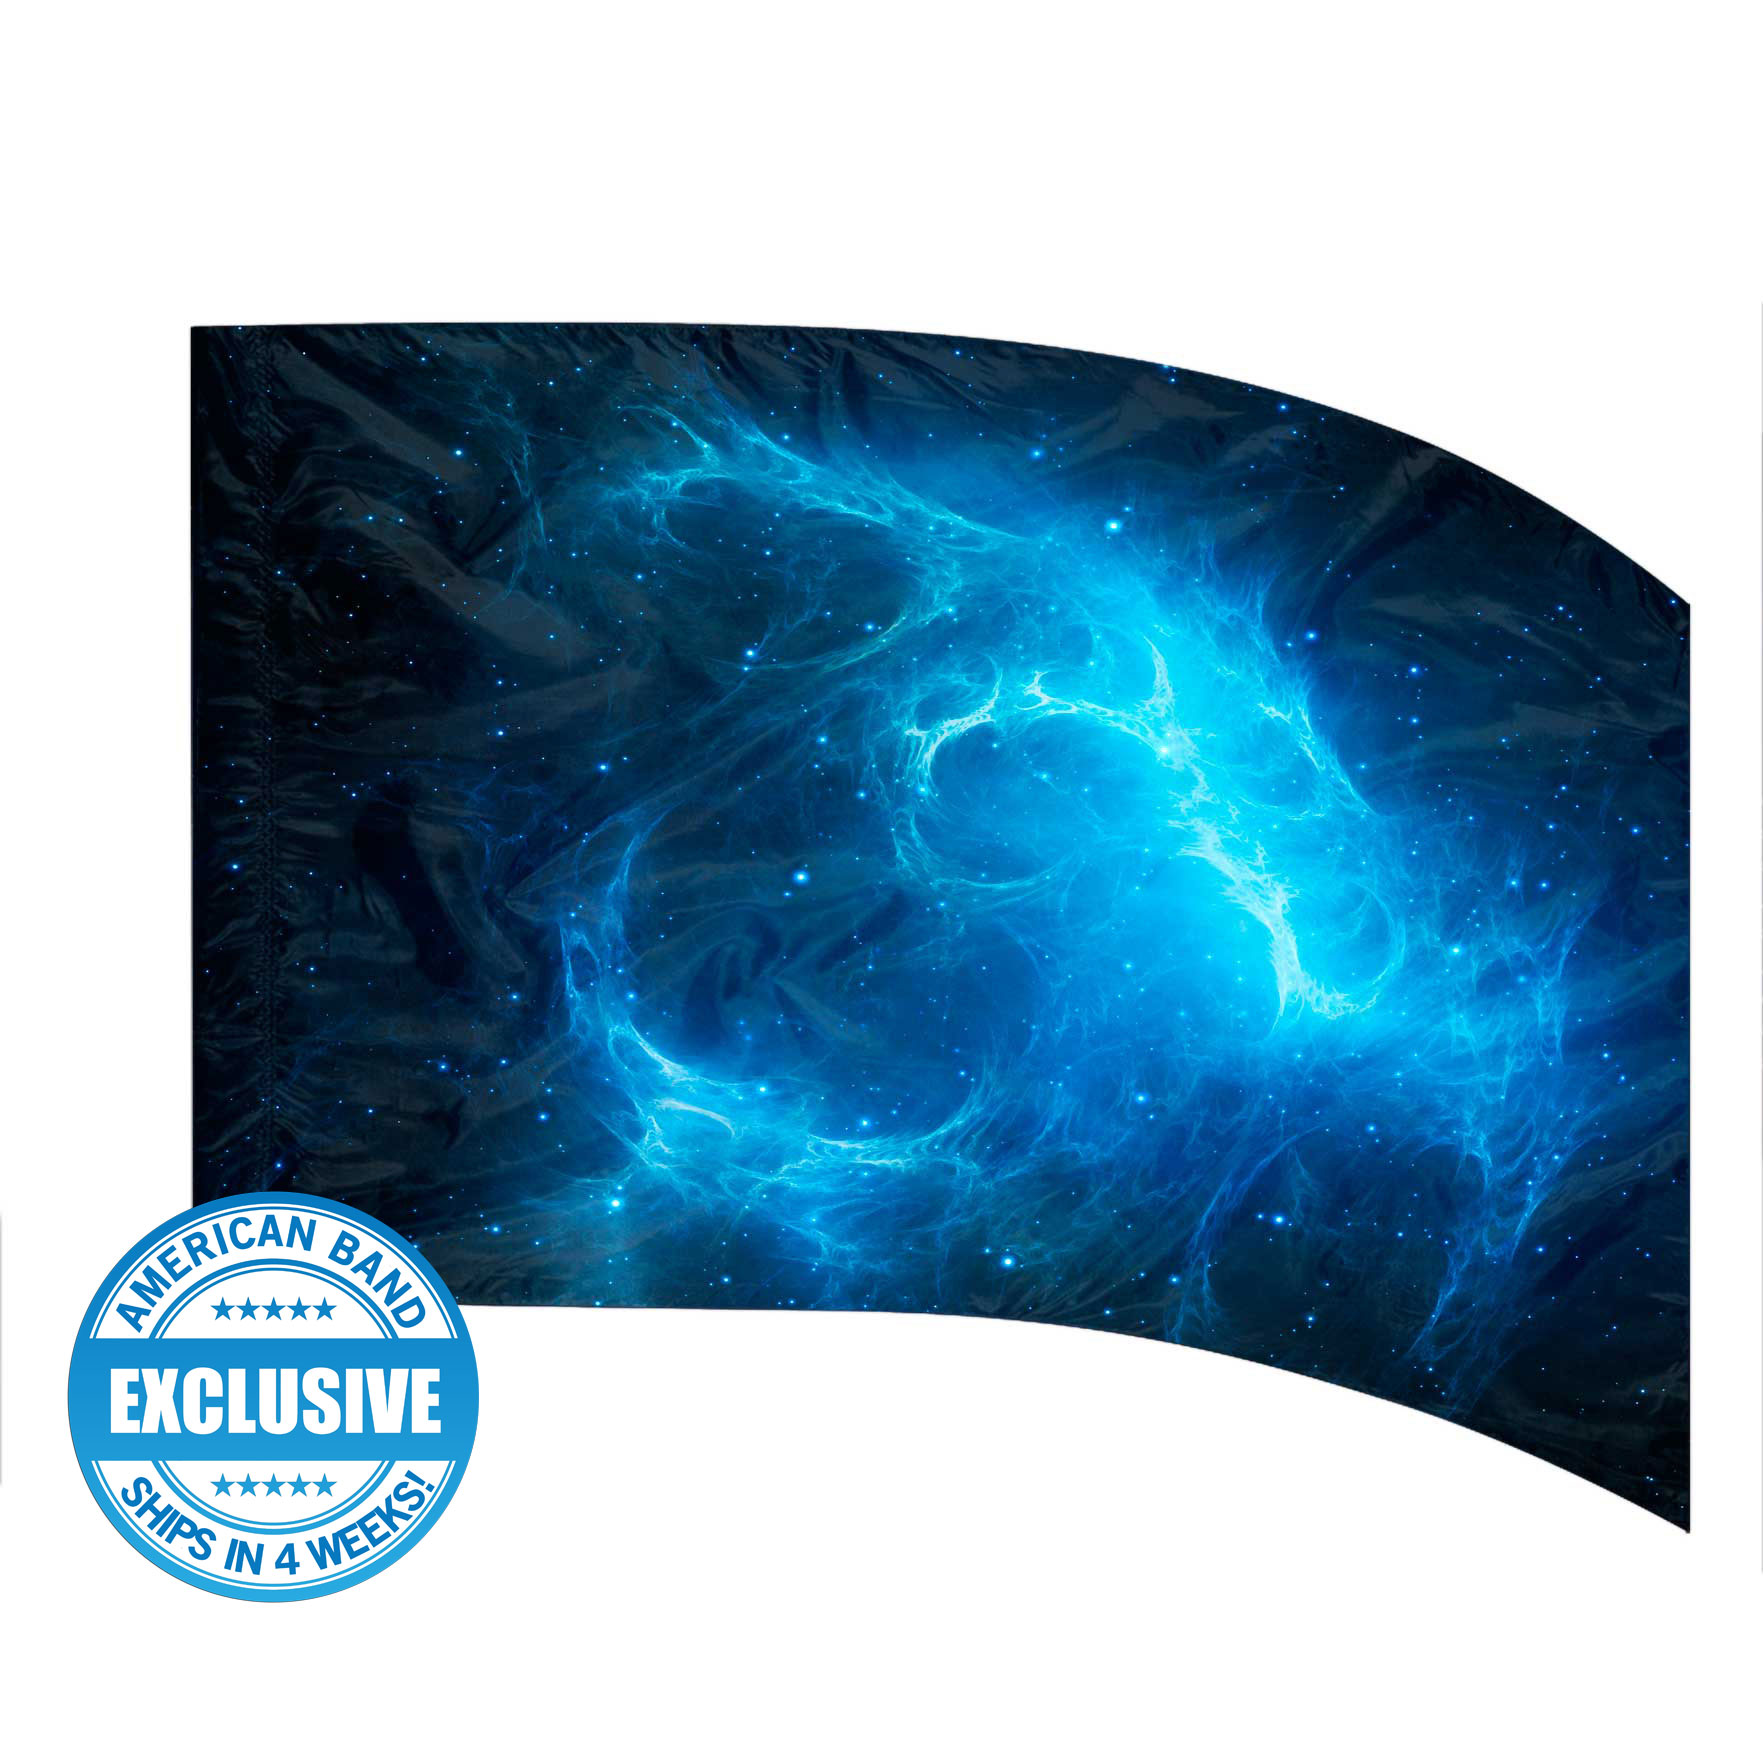 Made-to-Order Digital Cosmos Flags: Style 4